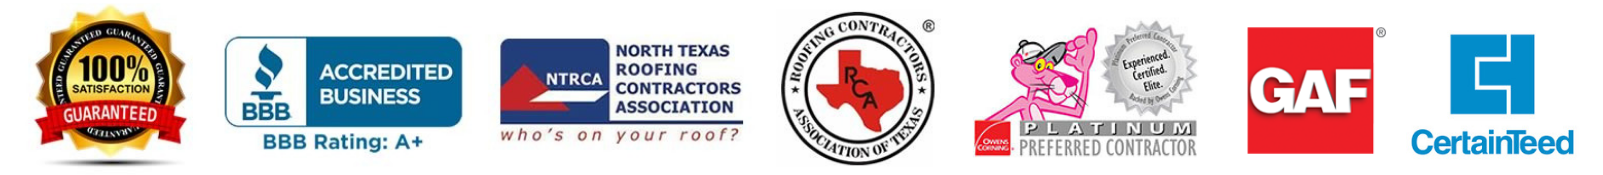 New-View-Roofing-Certifications.jpg